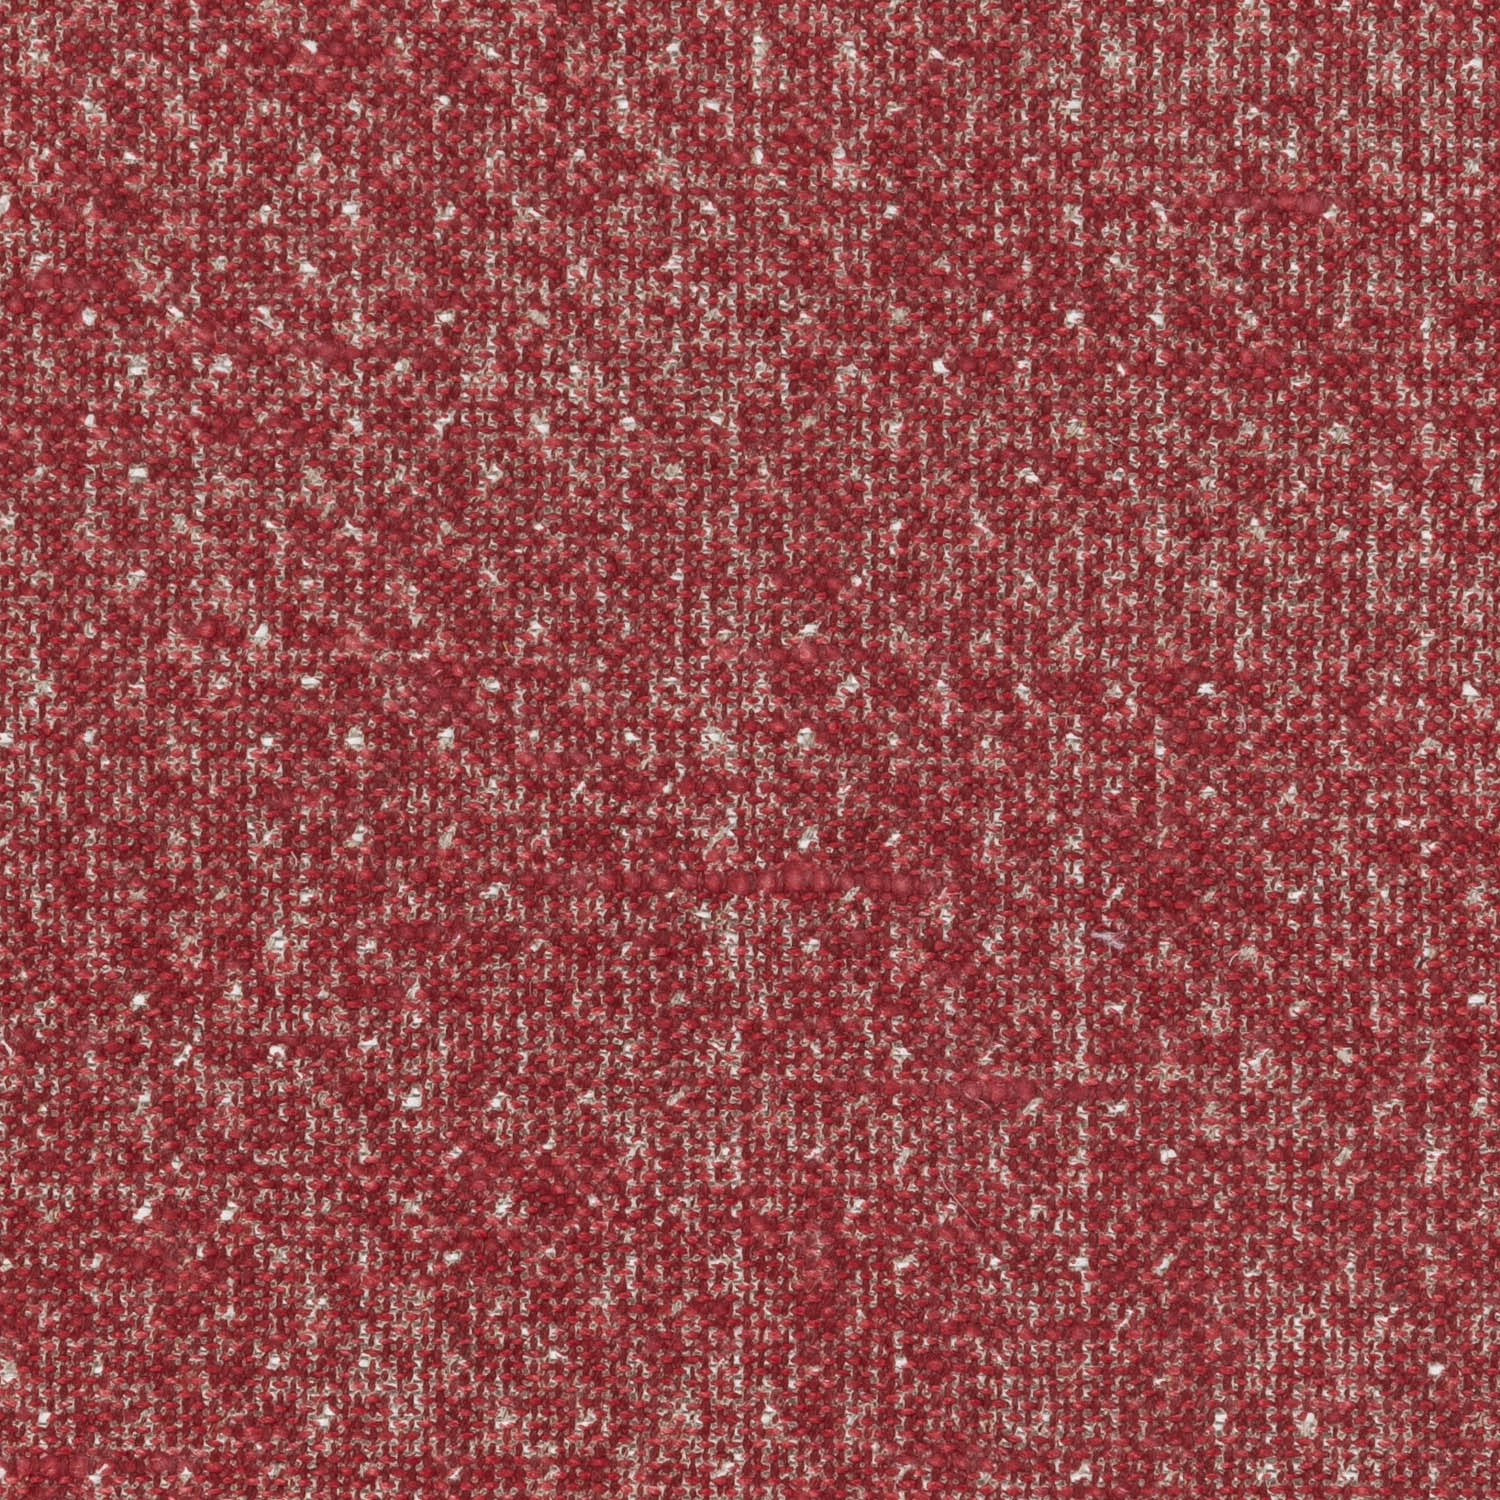 n-064-red-figured-linen-1